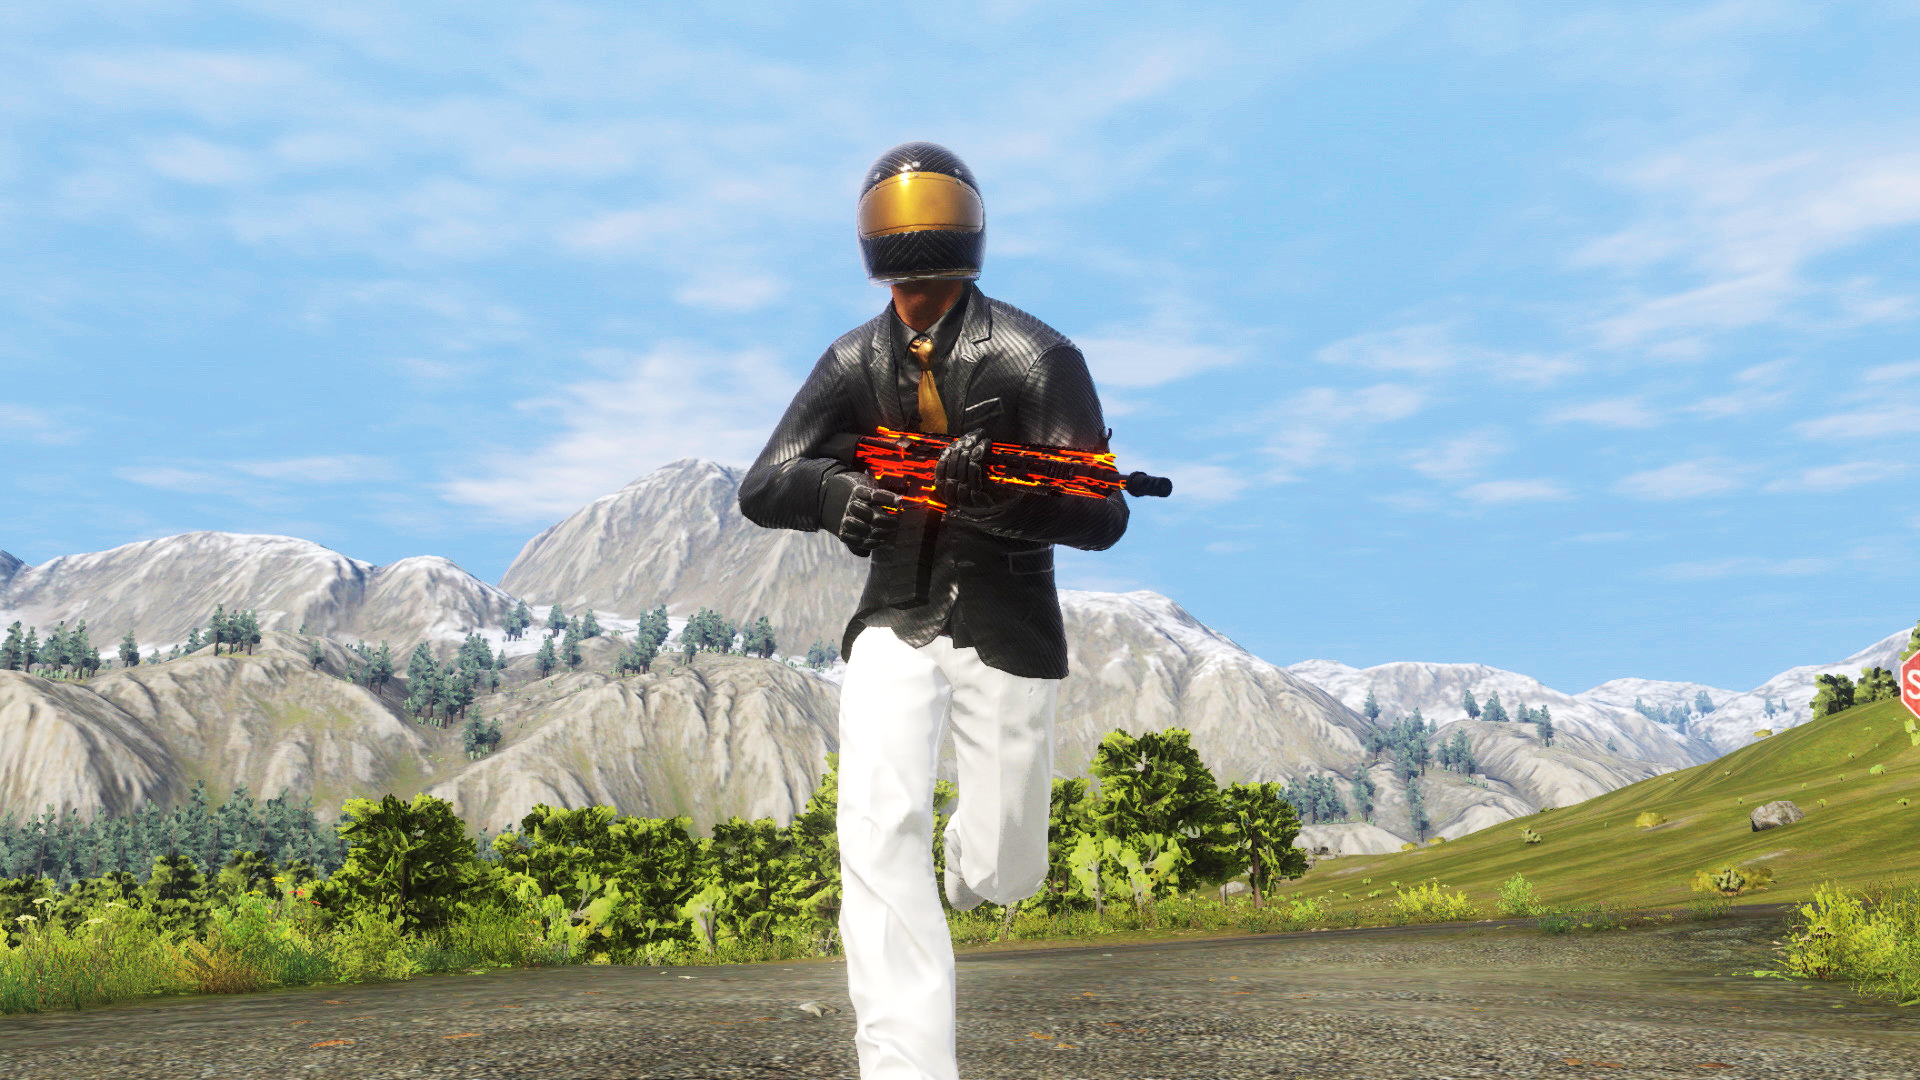 The Future of H1Z1